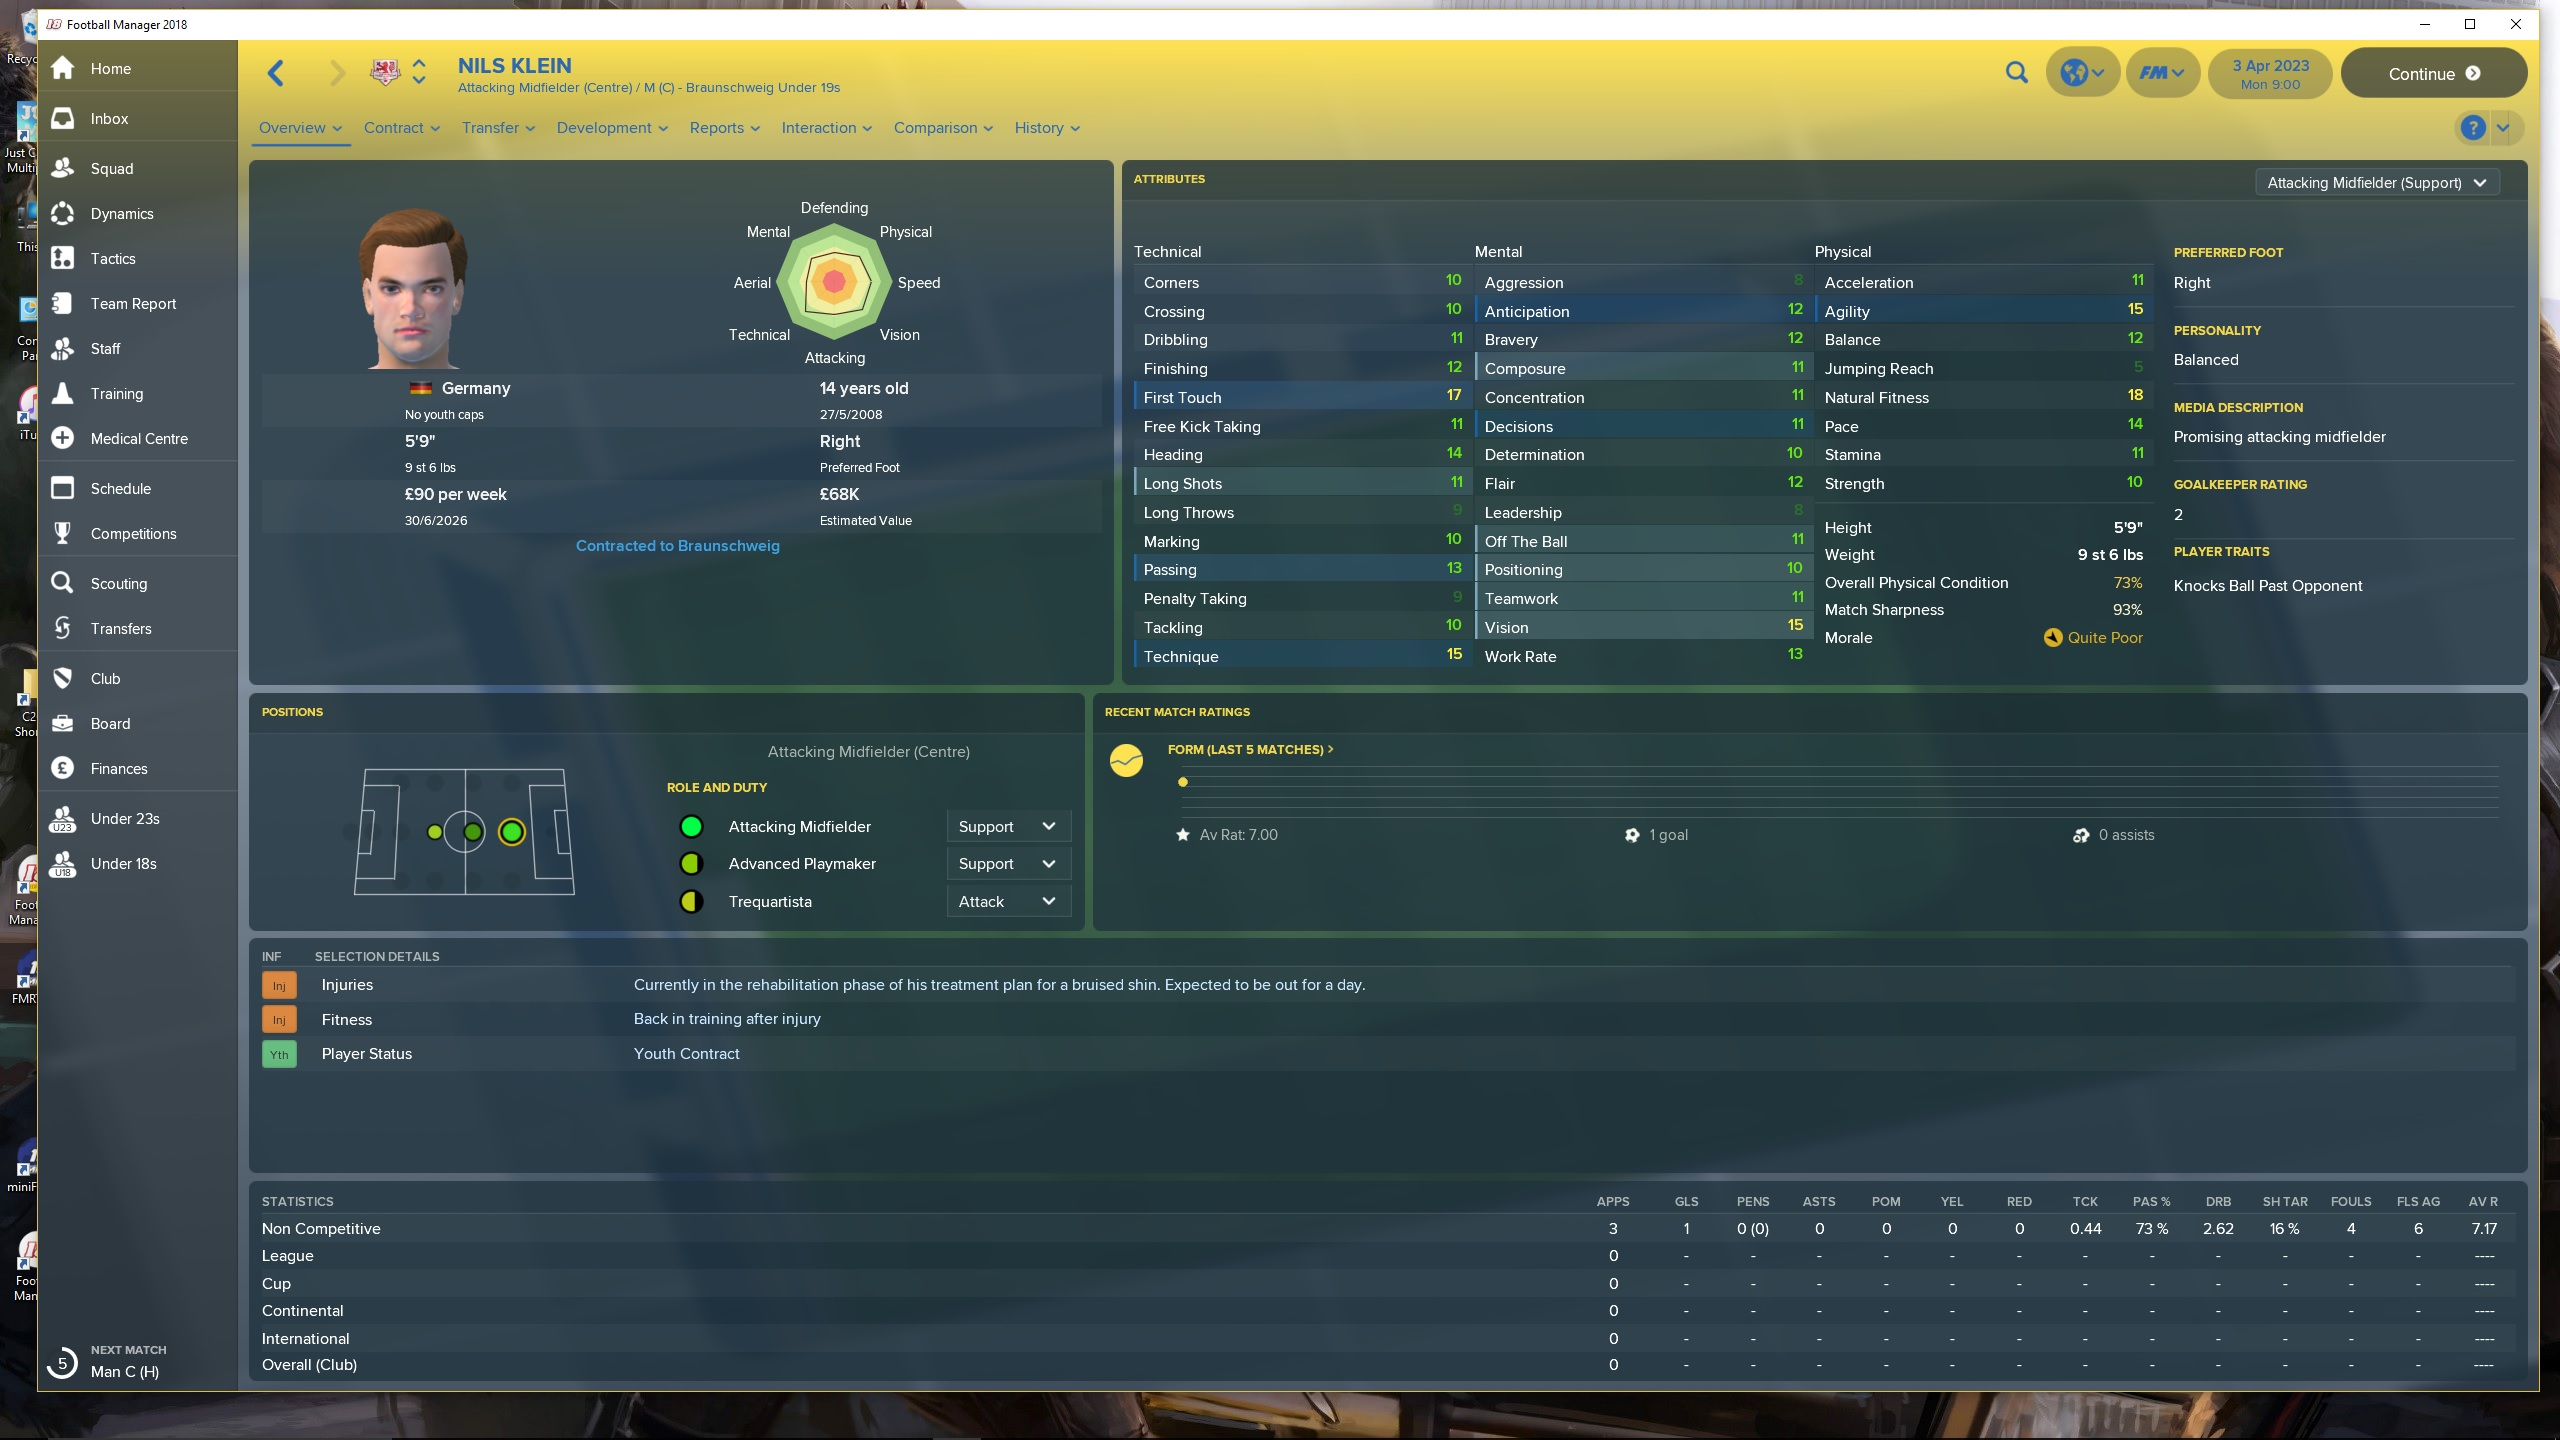 Best ever Regen - Football Manager General Discussion - Sports